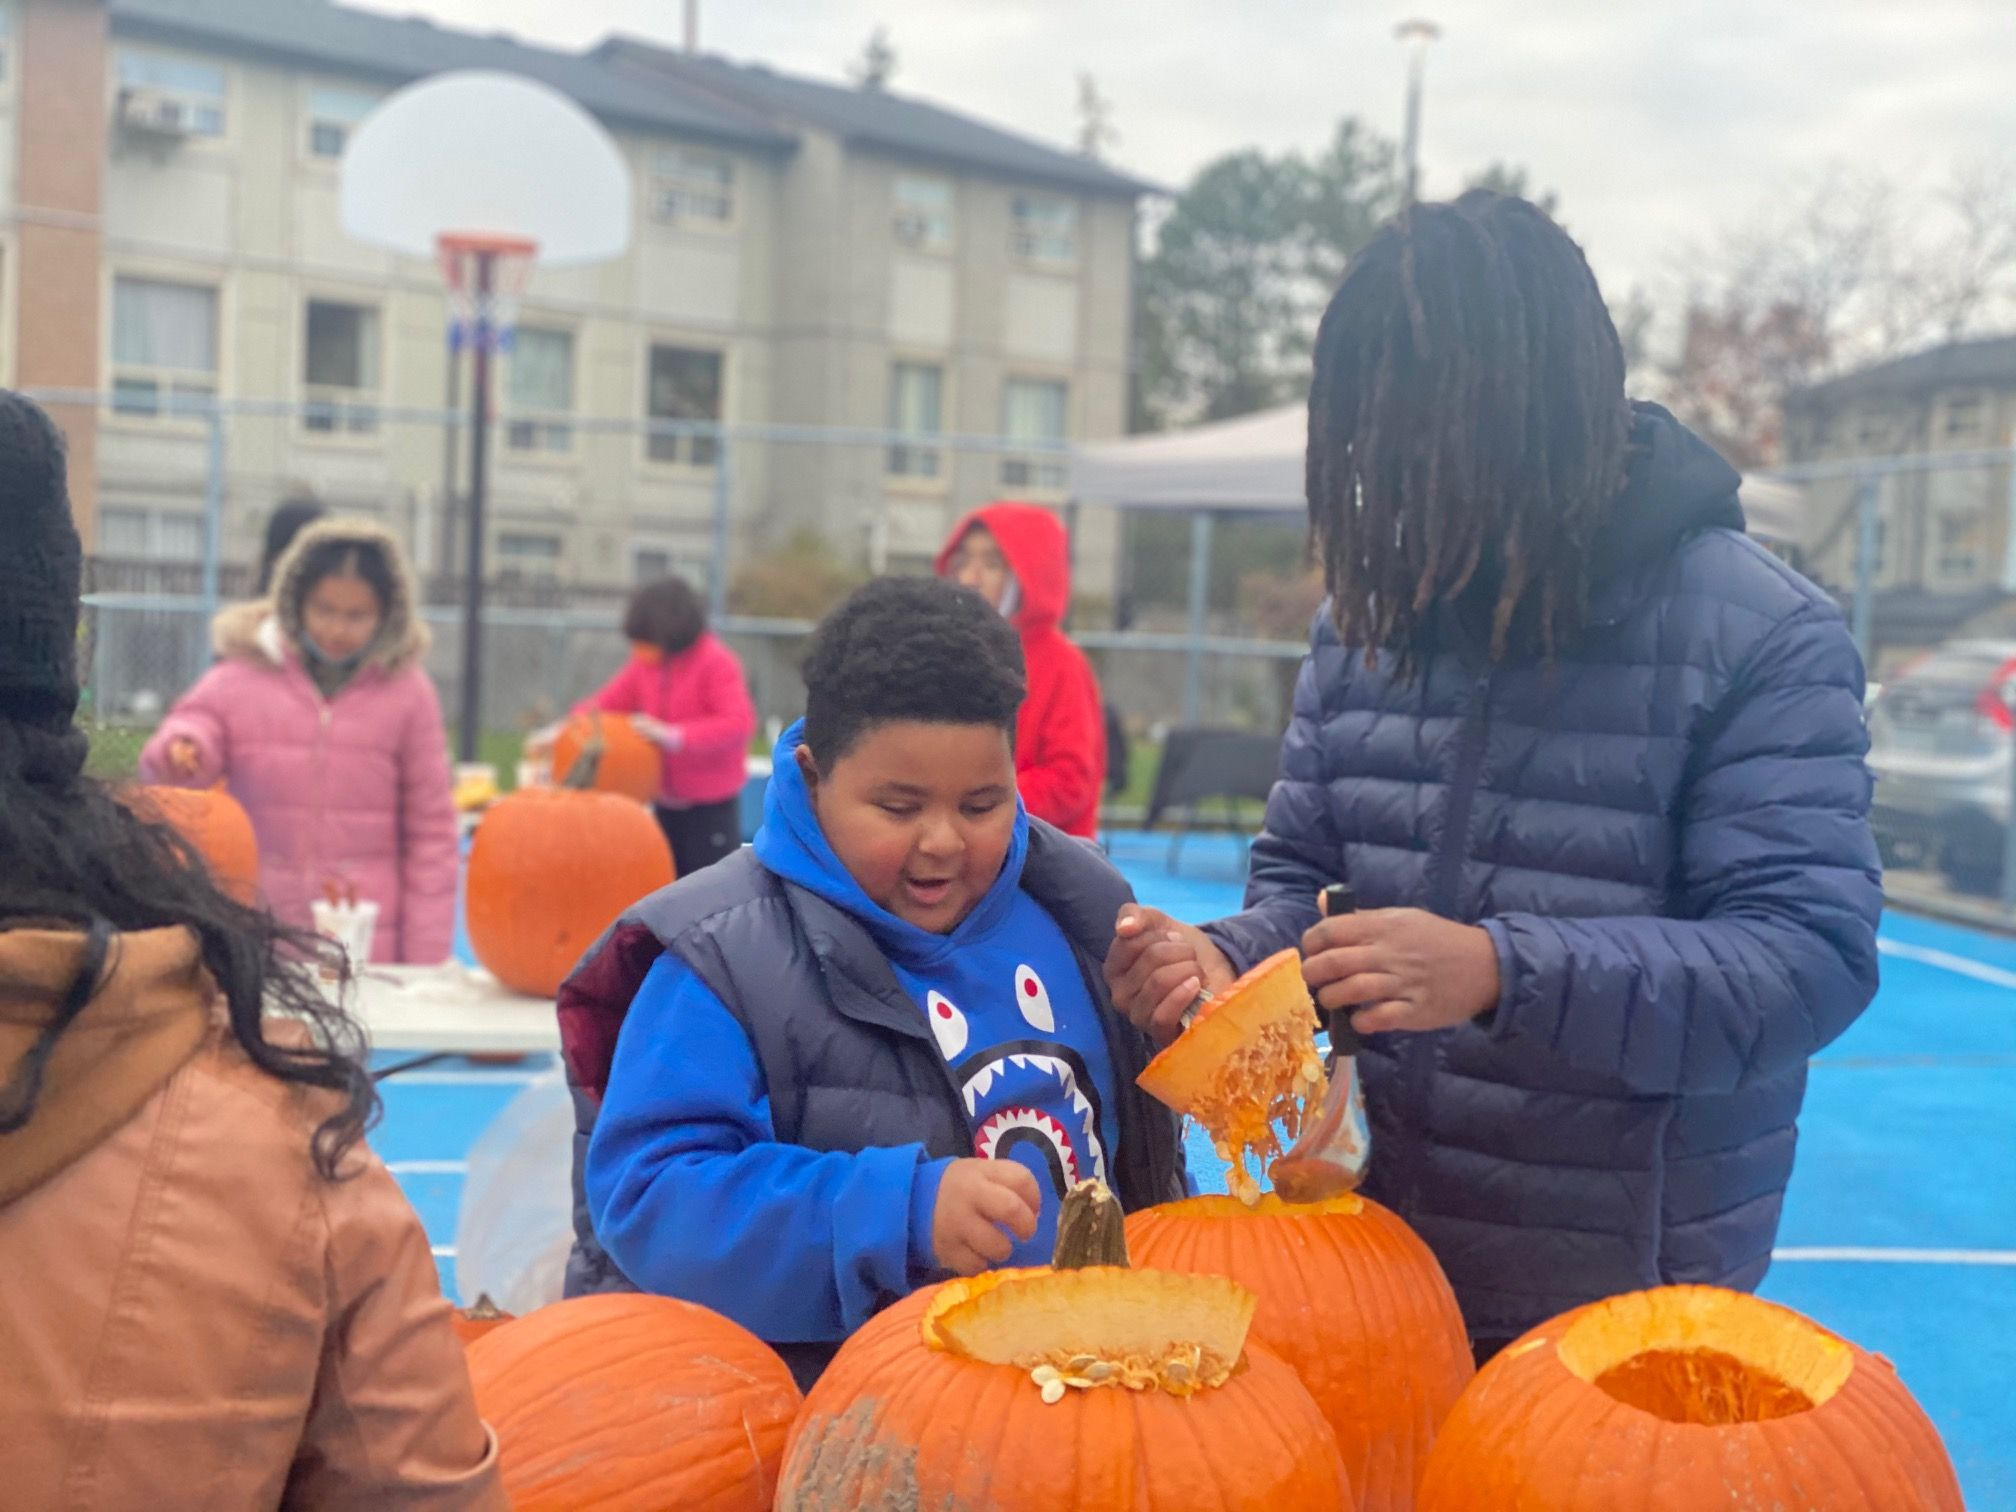 Trying pumpkin carving for the first time at a fall festival organized by Issaq Ahmed.